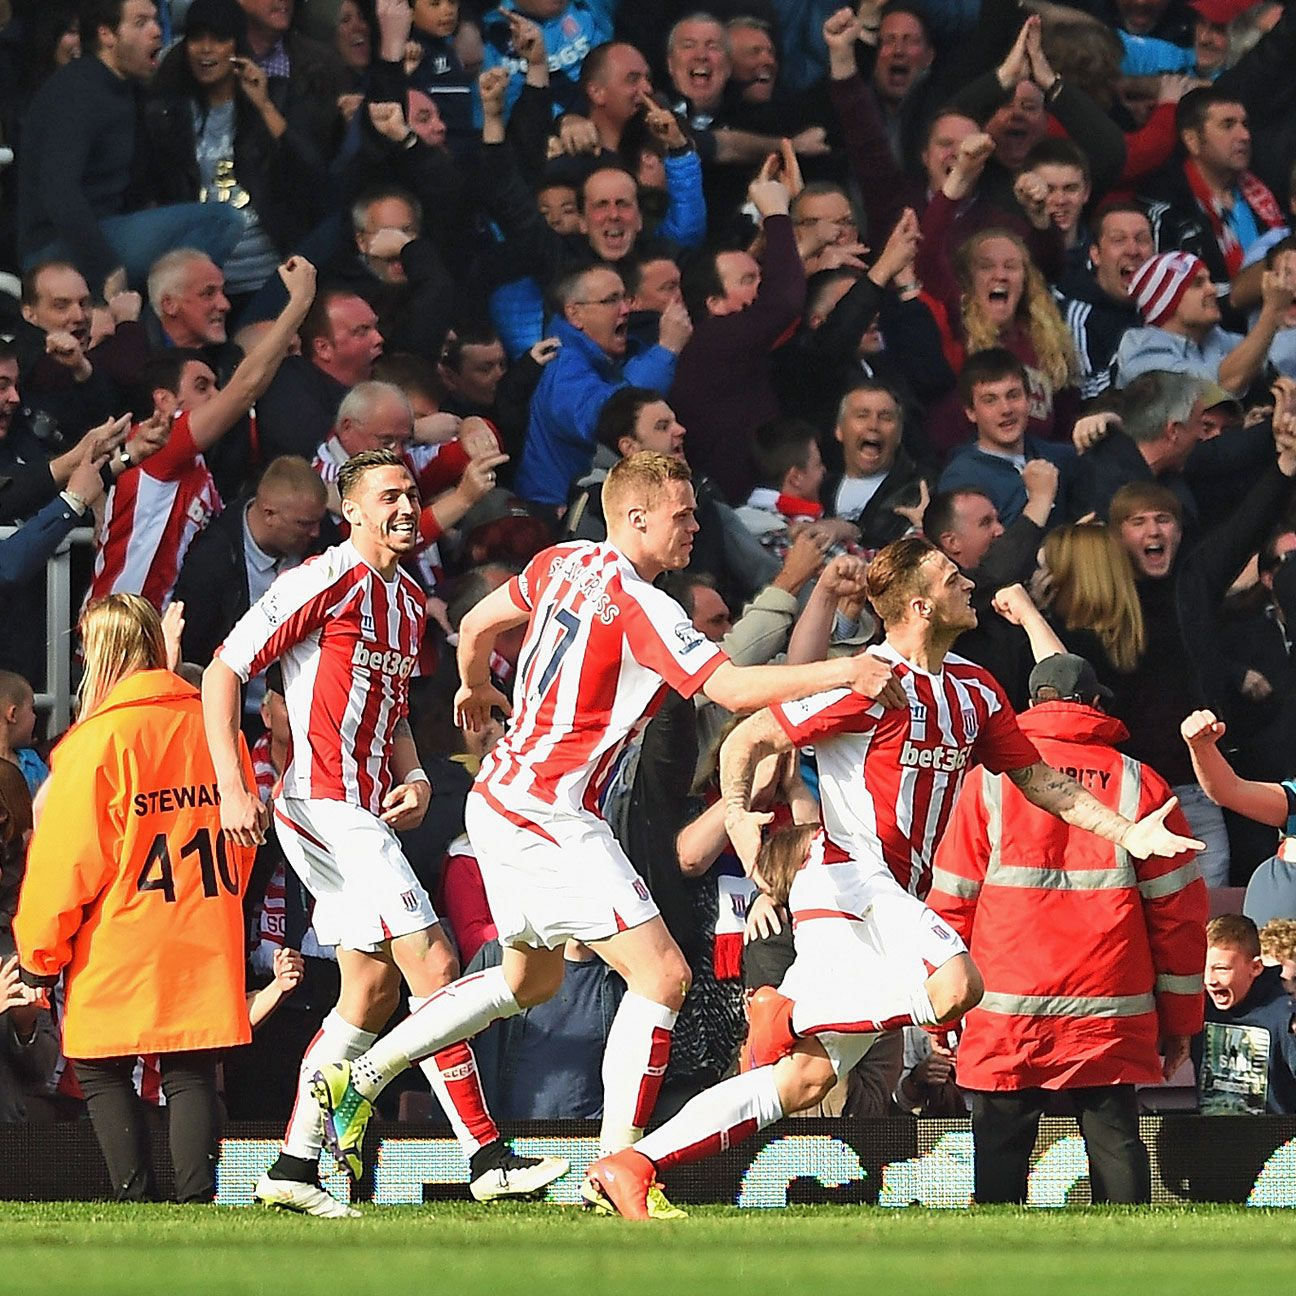 Stoke will look to continue their march on a top-eight finish with a home win over struggling Sunderland.